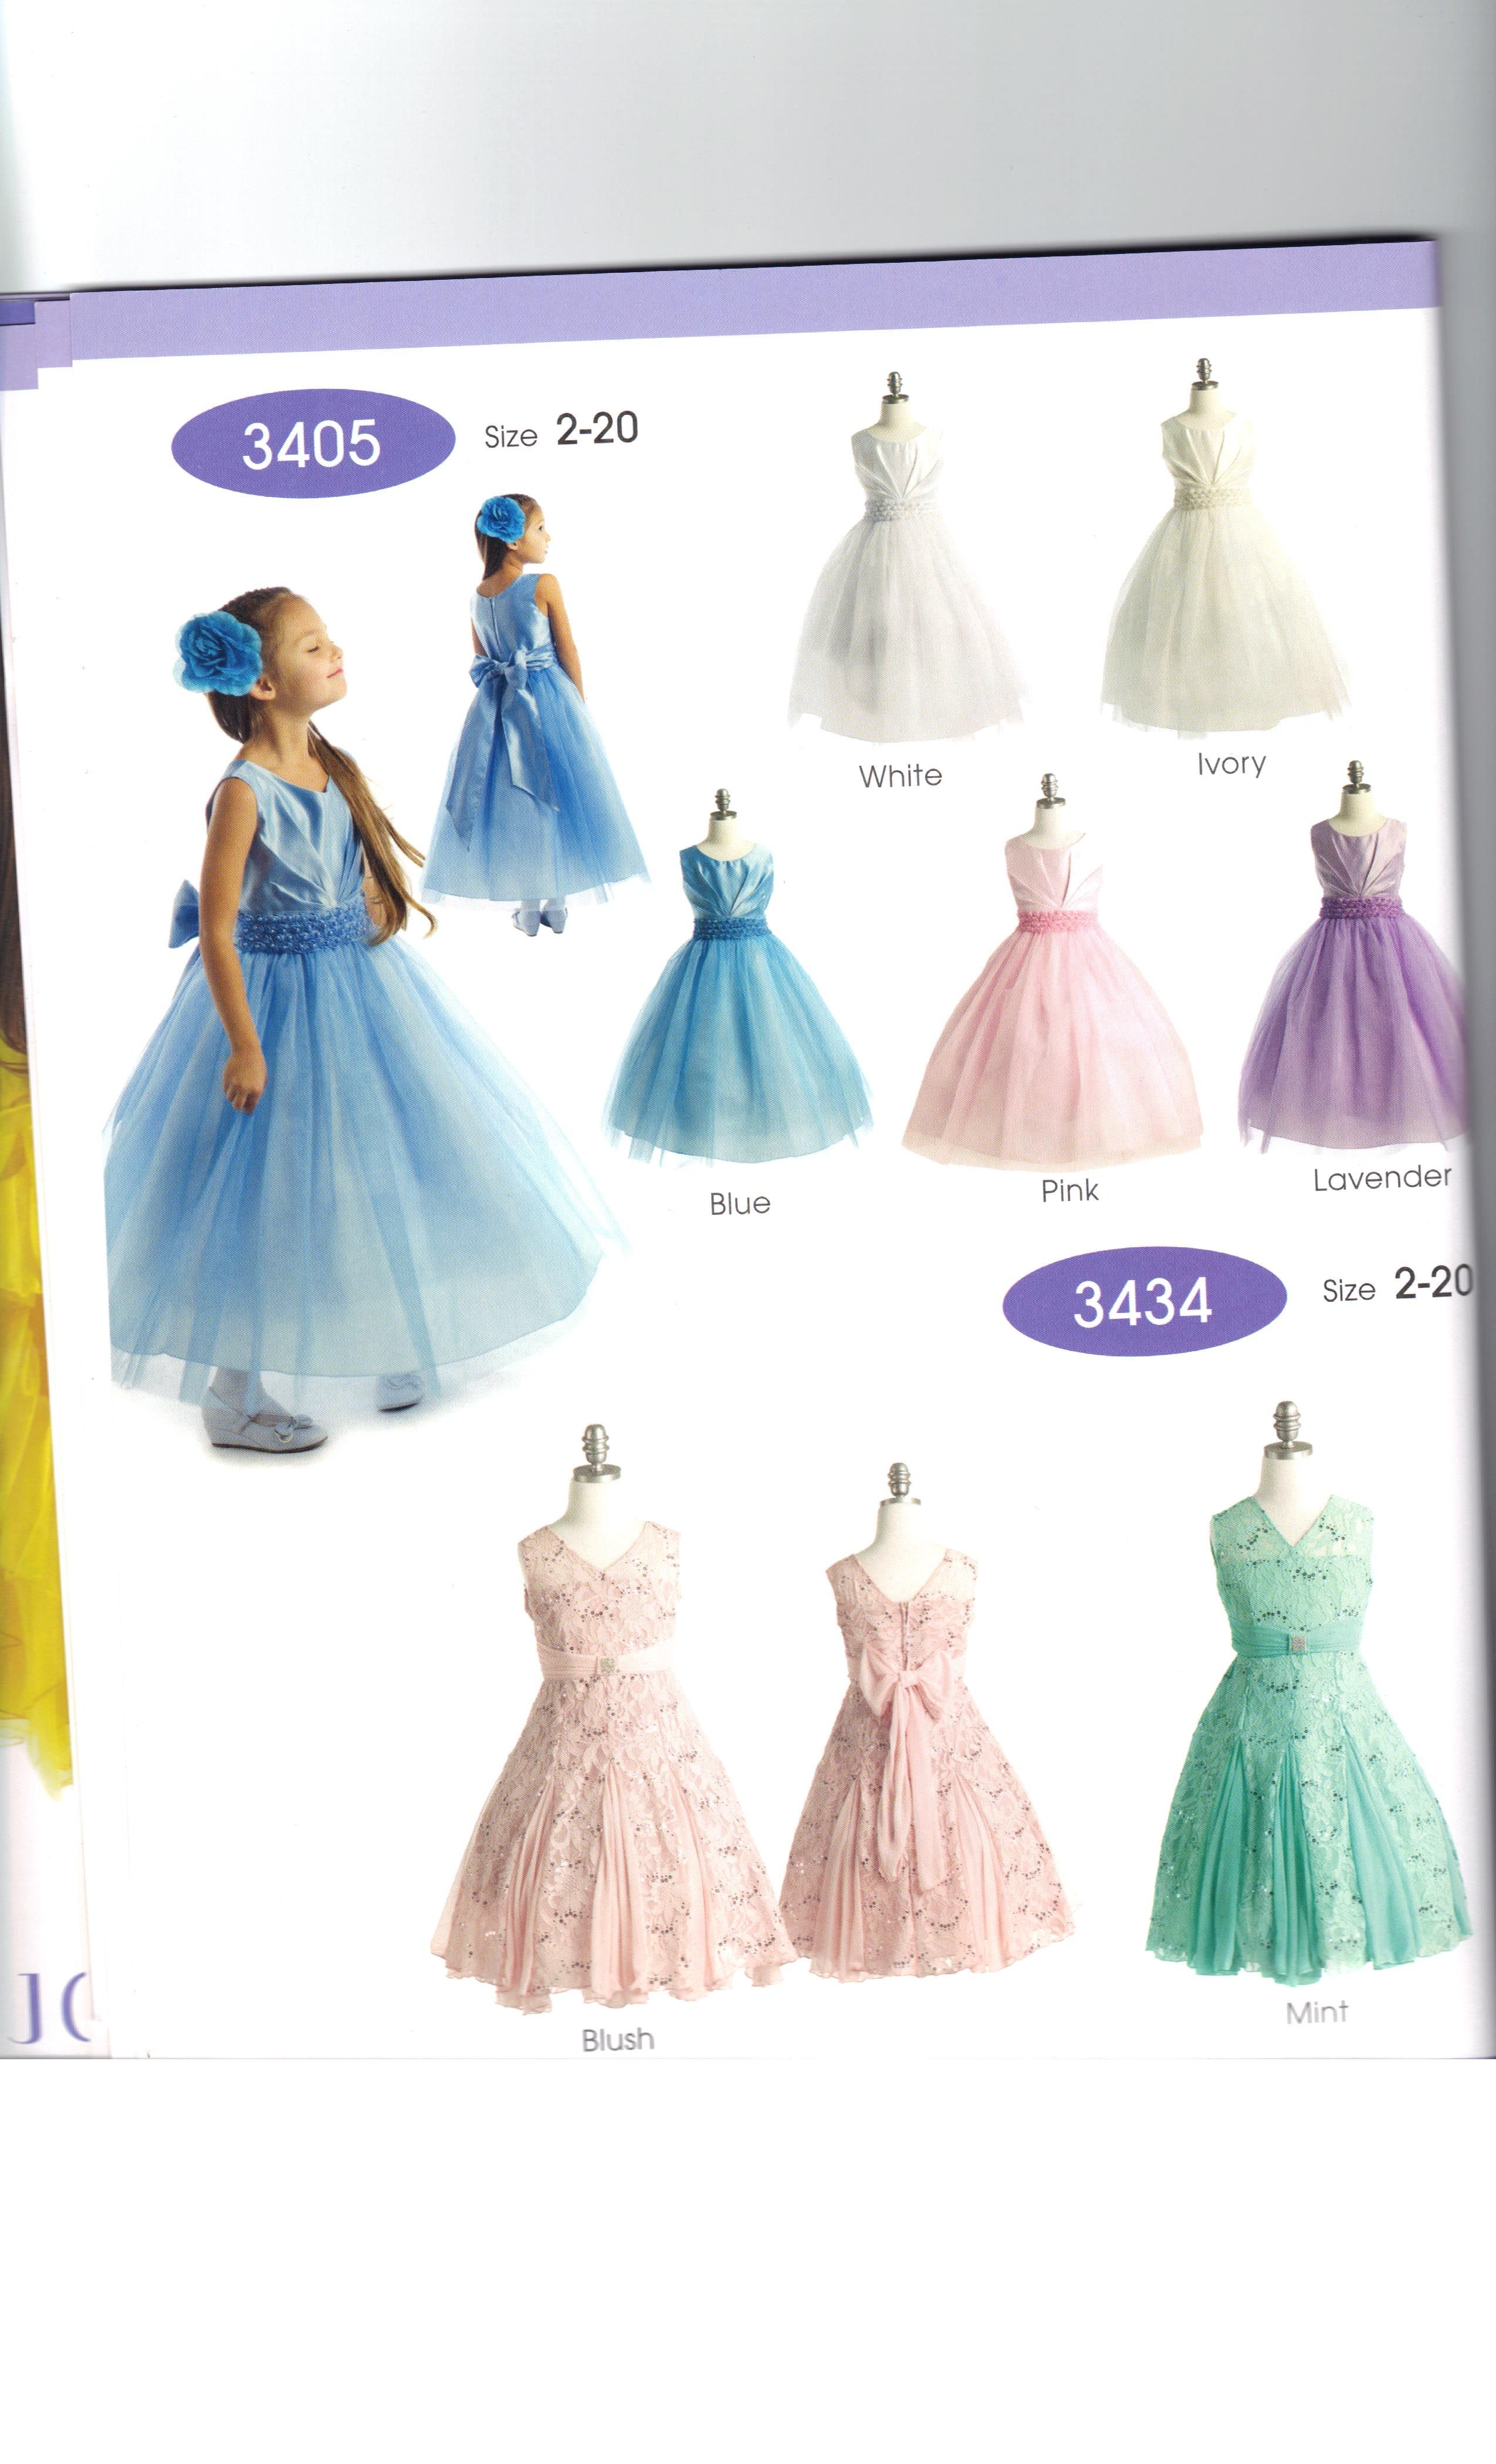 New Styles New Dress Books have arrived. Love the new styles and colors. #GirlsDresses